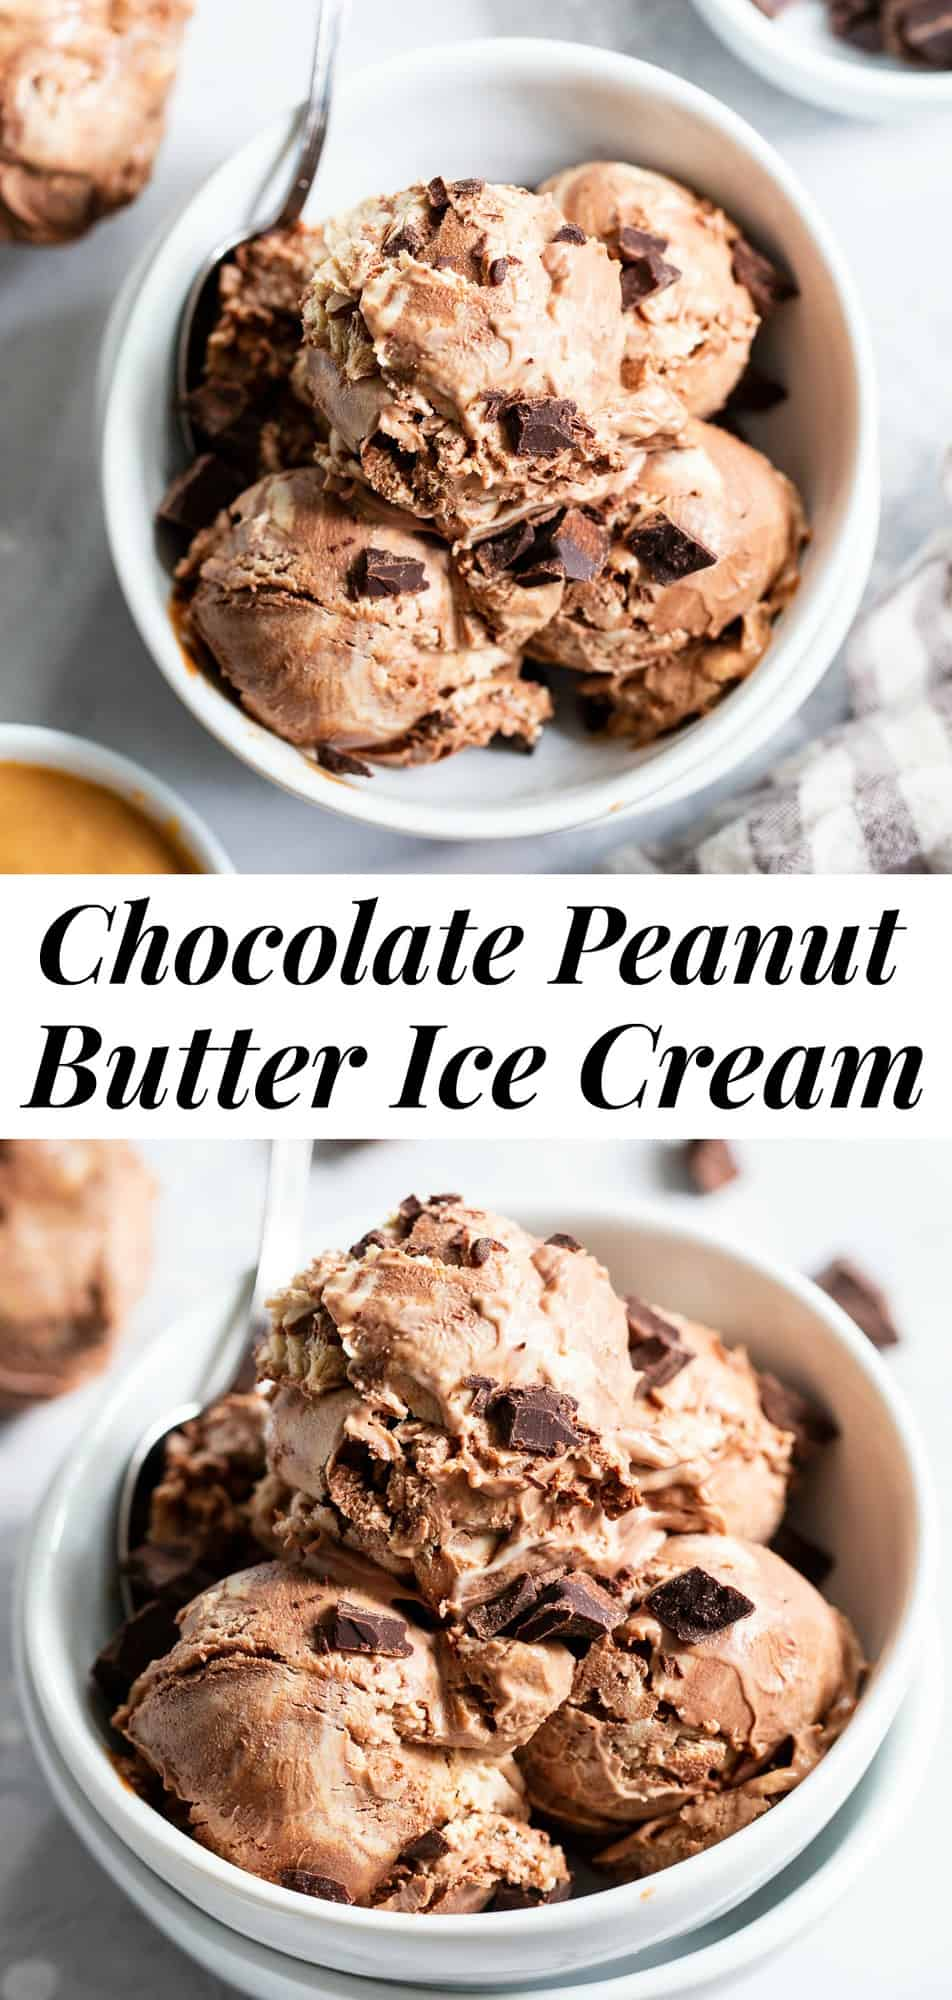 This paleo and vegan chocolate peanut butter ice cream is rich, creamy and super easy to make!  No-churn chocolate ice cream is swirled with a peanut butter layer (or other nut butter) and dark chocolate chunks. It's family approved and irresistibly chocolatey!#paleo #vegan #veganicecream #icecream